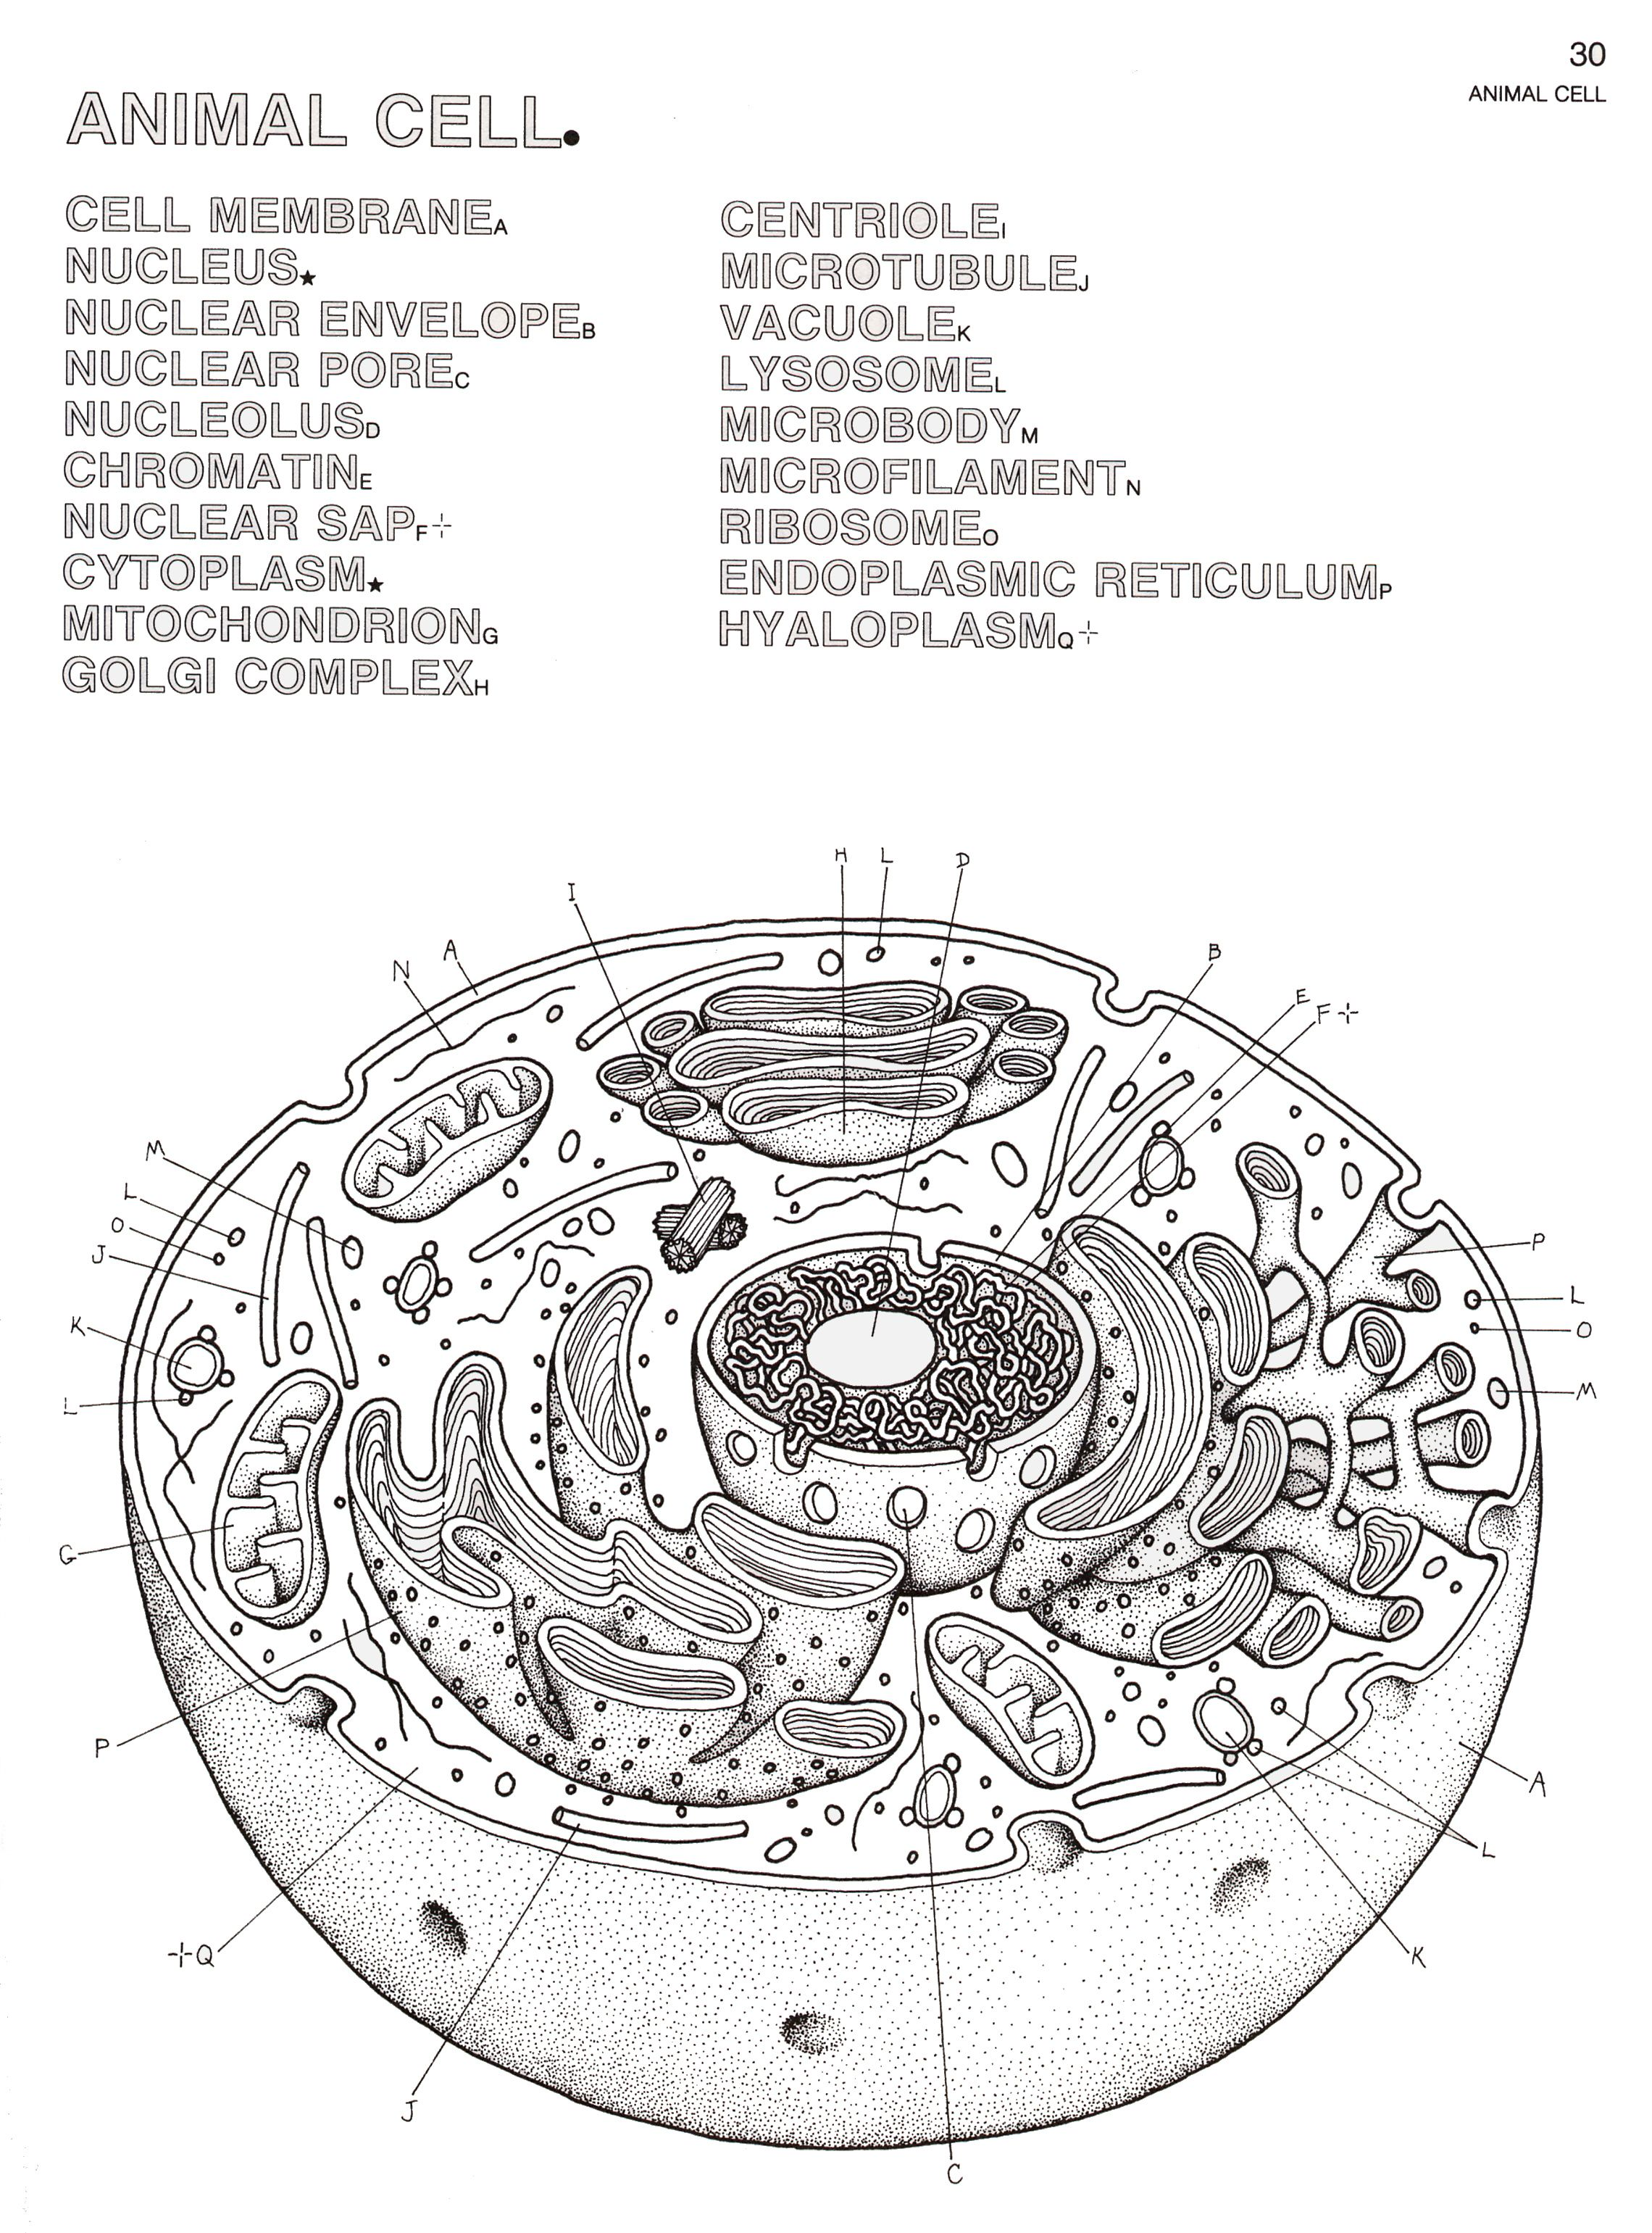 3d plant cell diagram from textbook image galleries imagekbcom